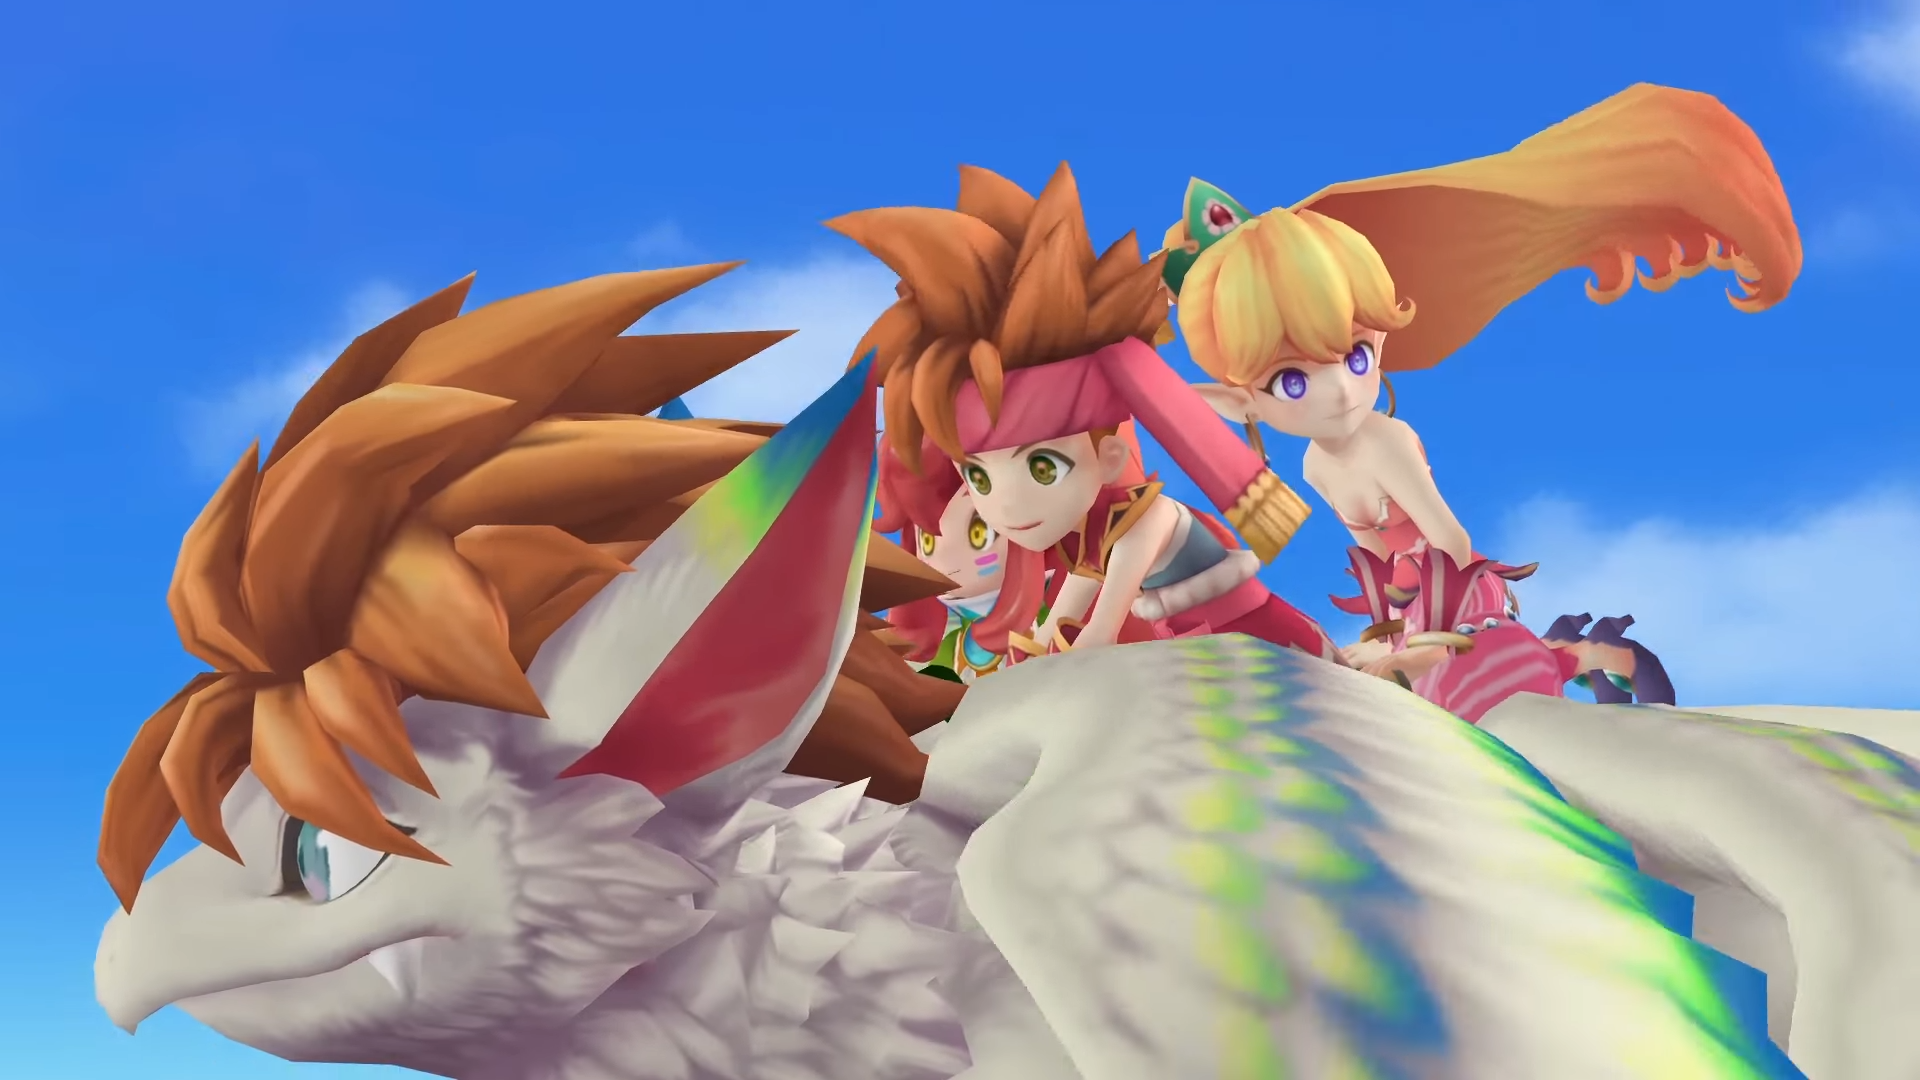 Nostalgia Critics Need to Calm Down about the Secret of Mana Remake